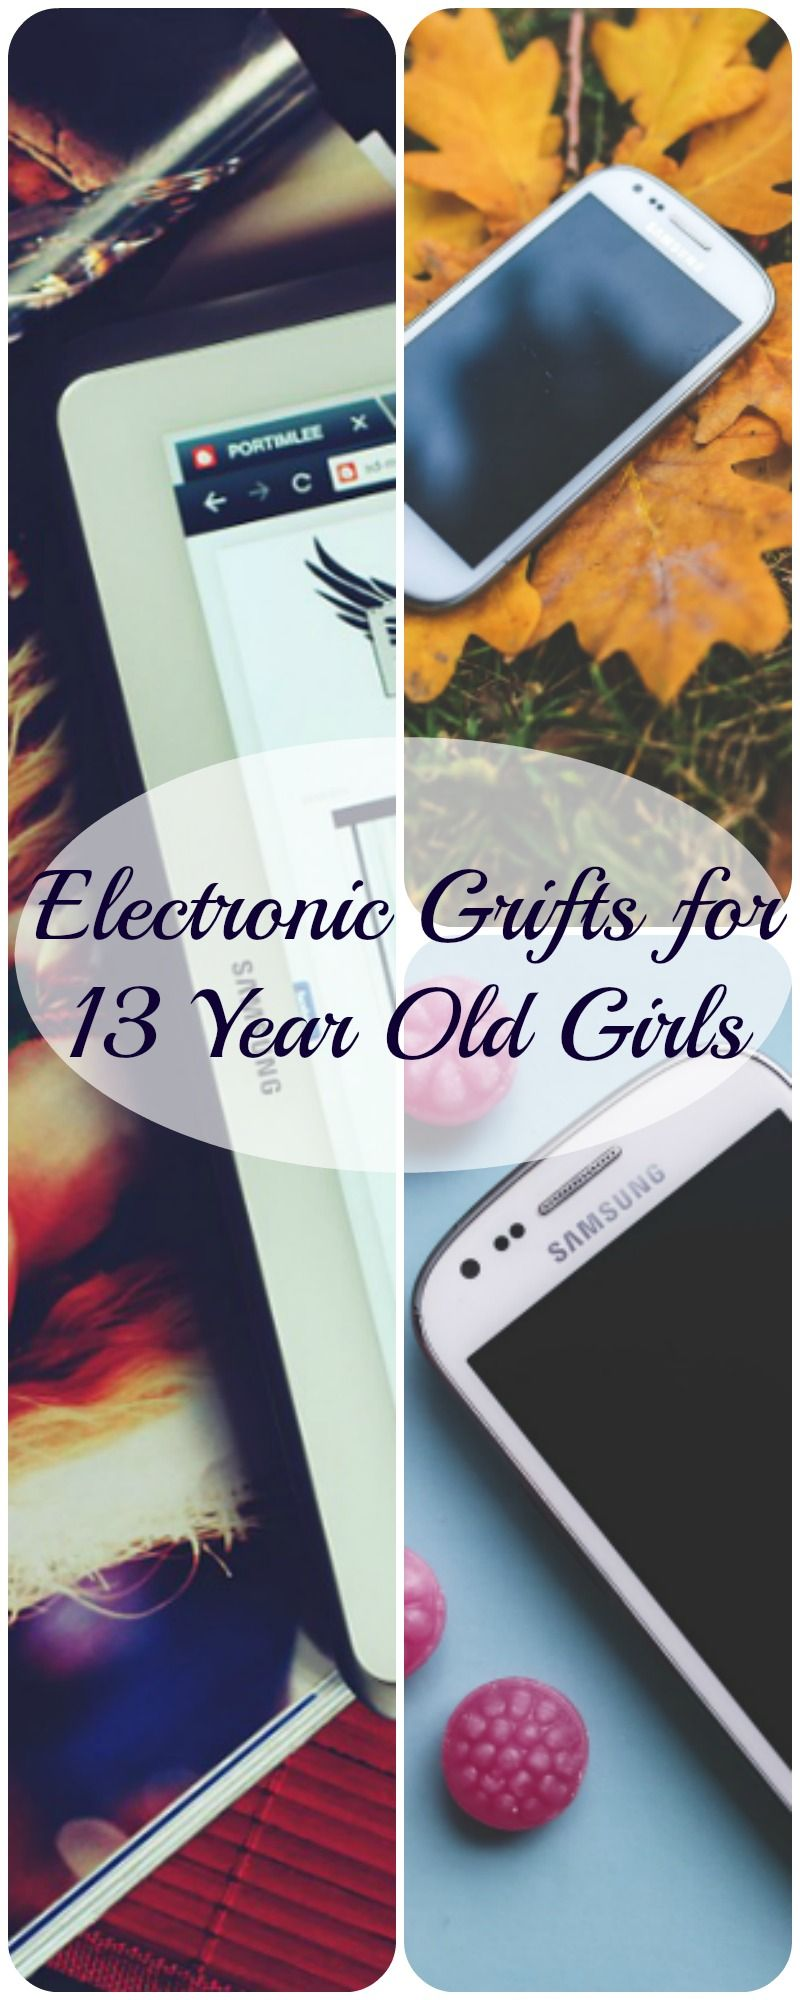 The best electronic gifts for 13 year old girls  sc 1 st  Pinterest & 20+ Of the Coolest 13th Birthday Gifts for Girls | Shop for Gifts ...